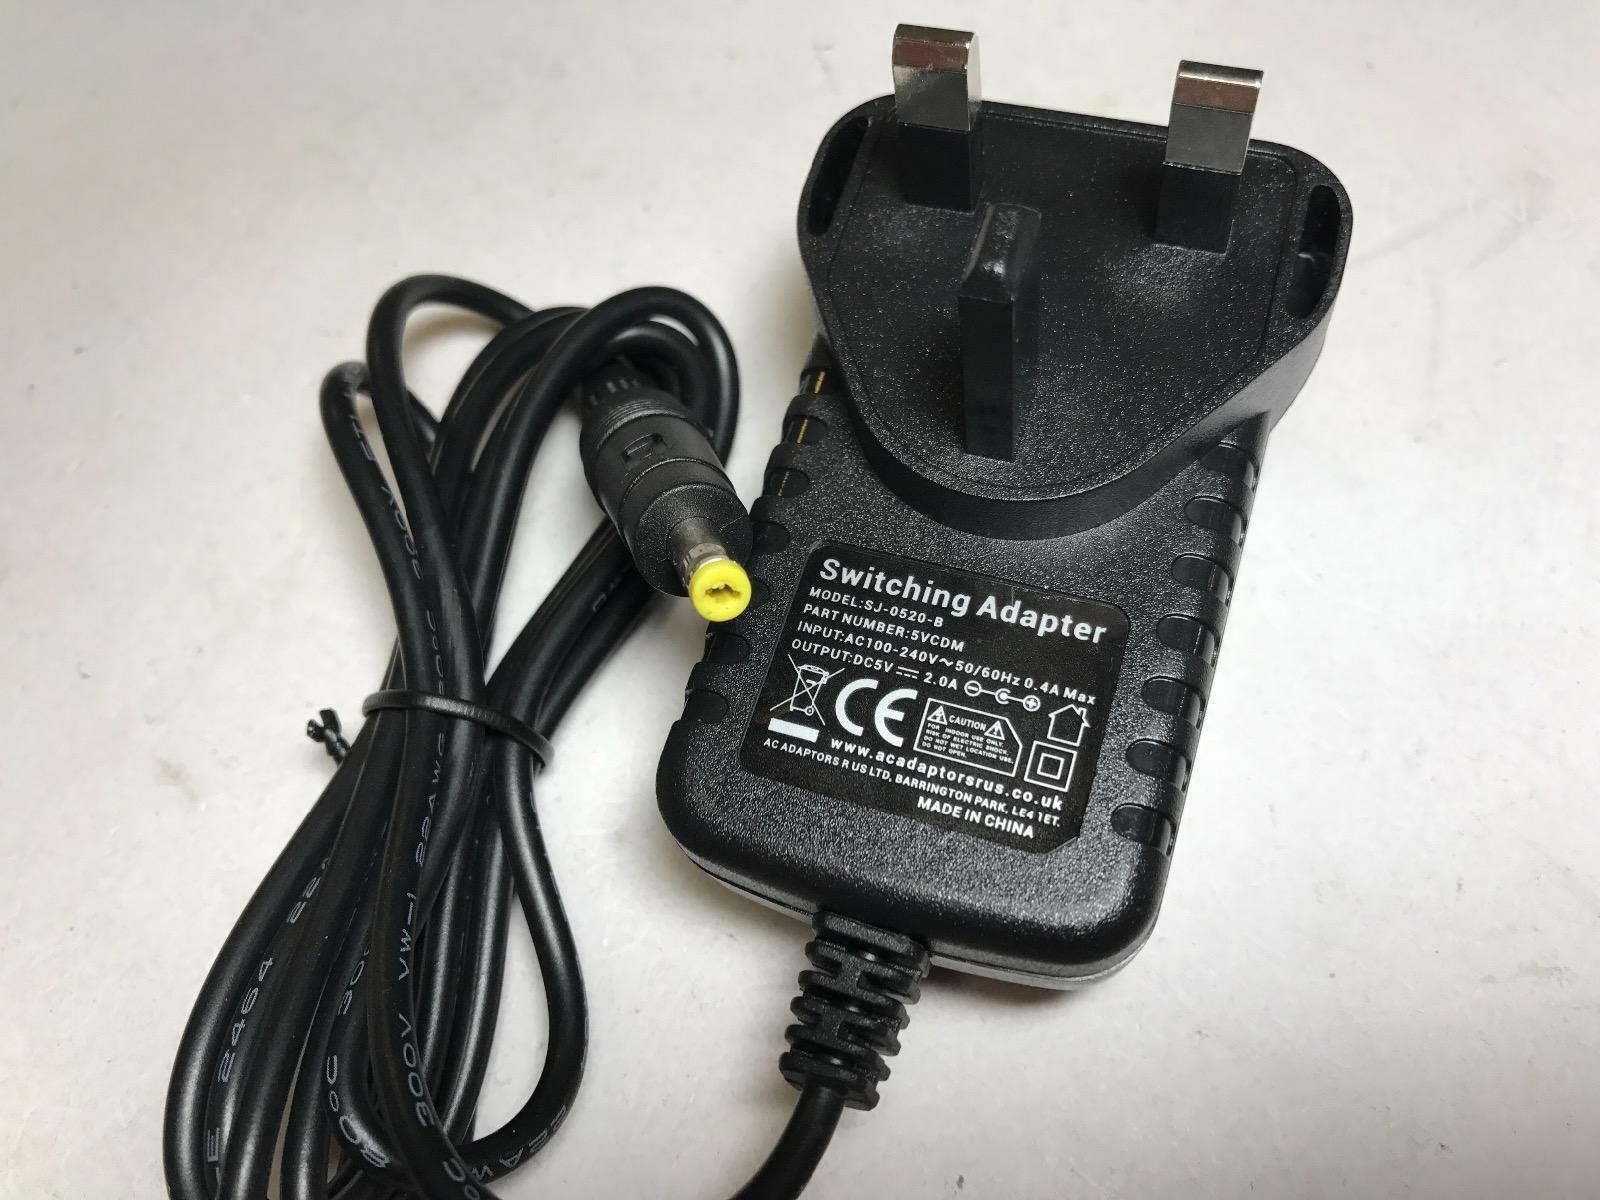 5V 1.0A 1A 1000mA AC-DC Switch Mode Adapter Power Supply 4.75x1.75 4.75mmx1.75mm